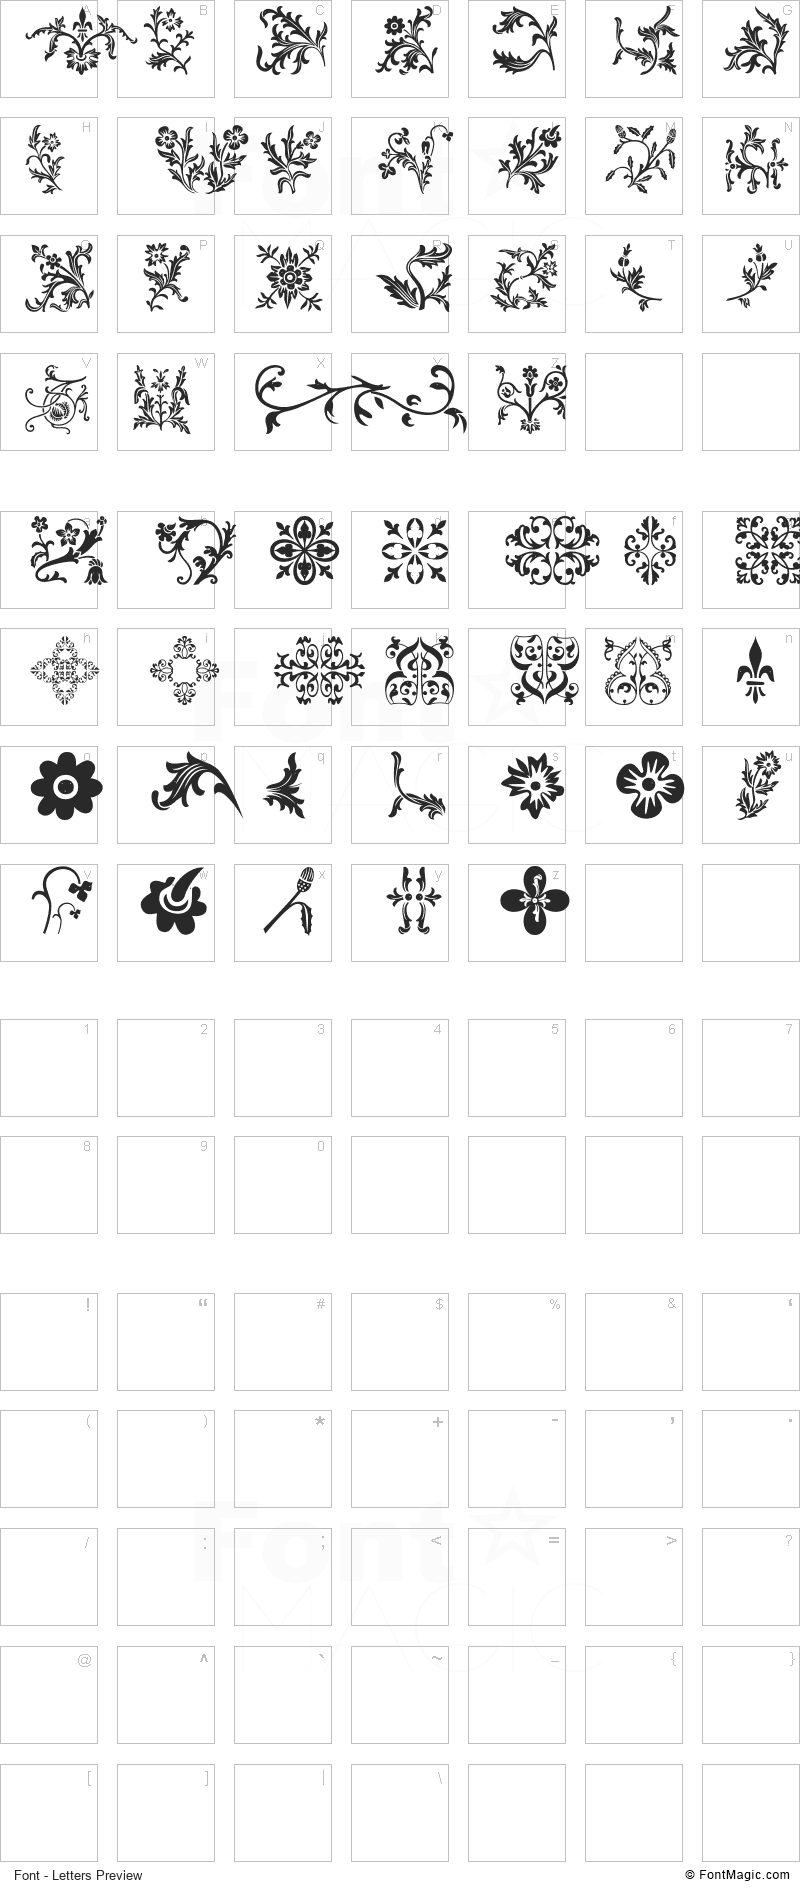 Floralia Font - All Latters Preview Chart